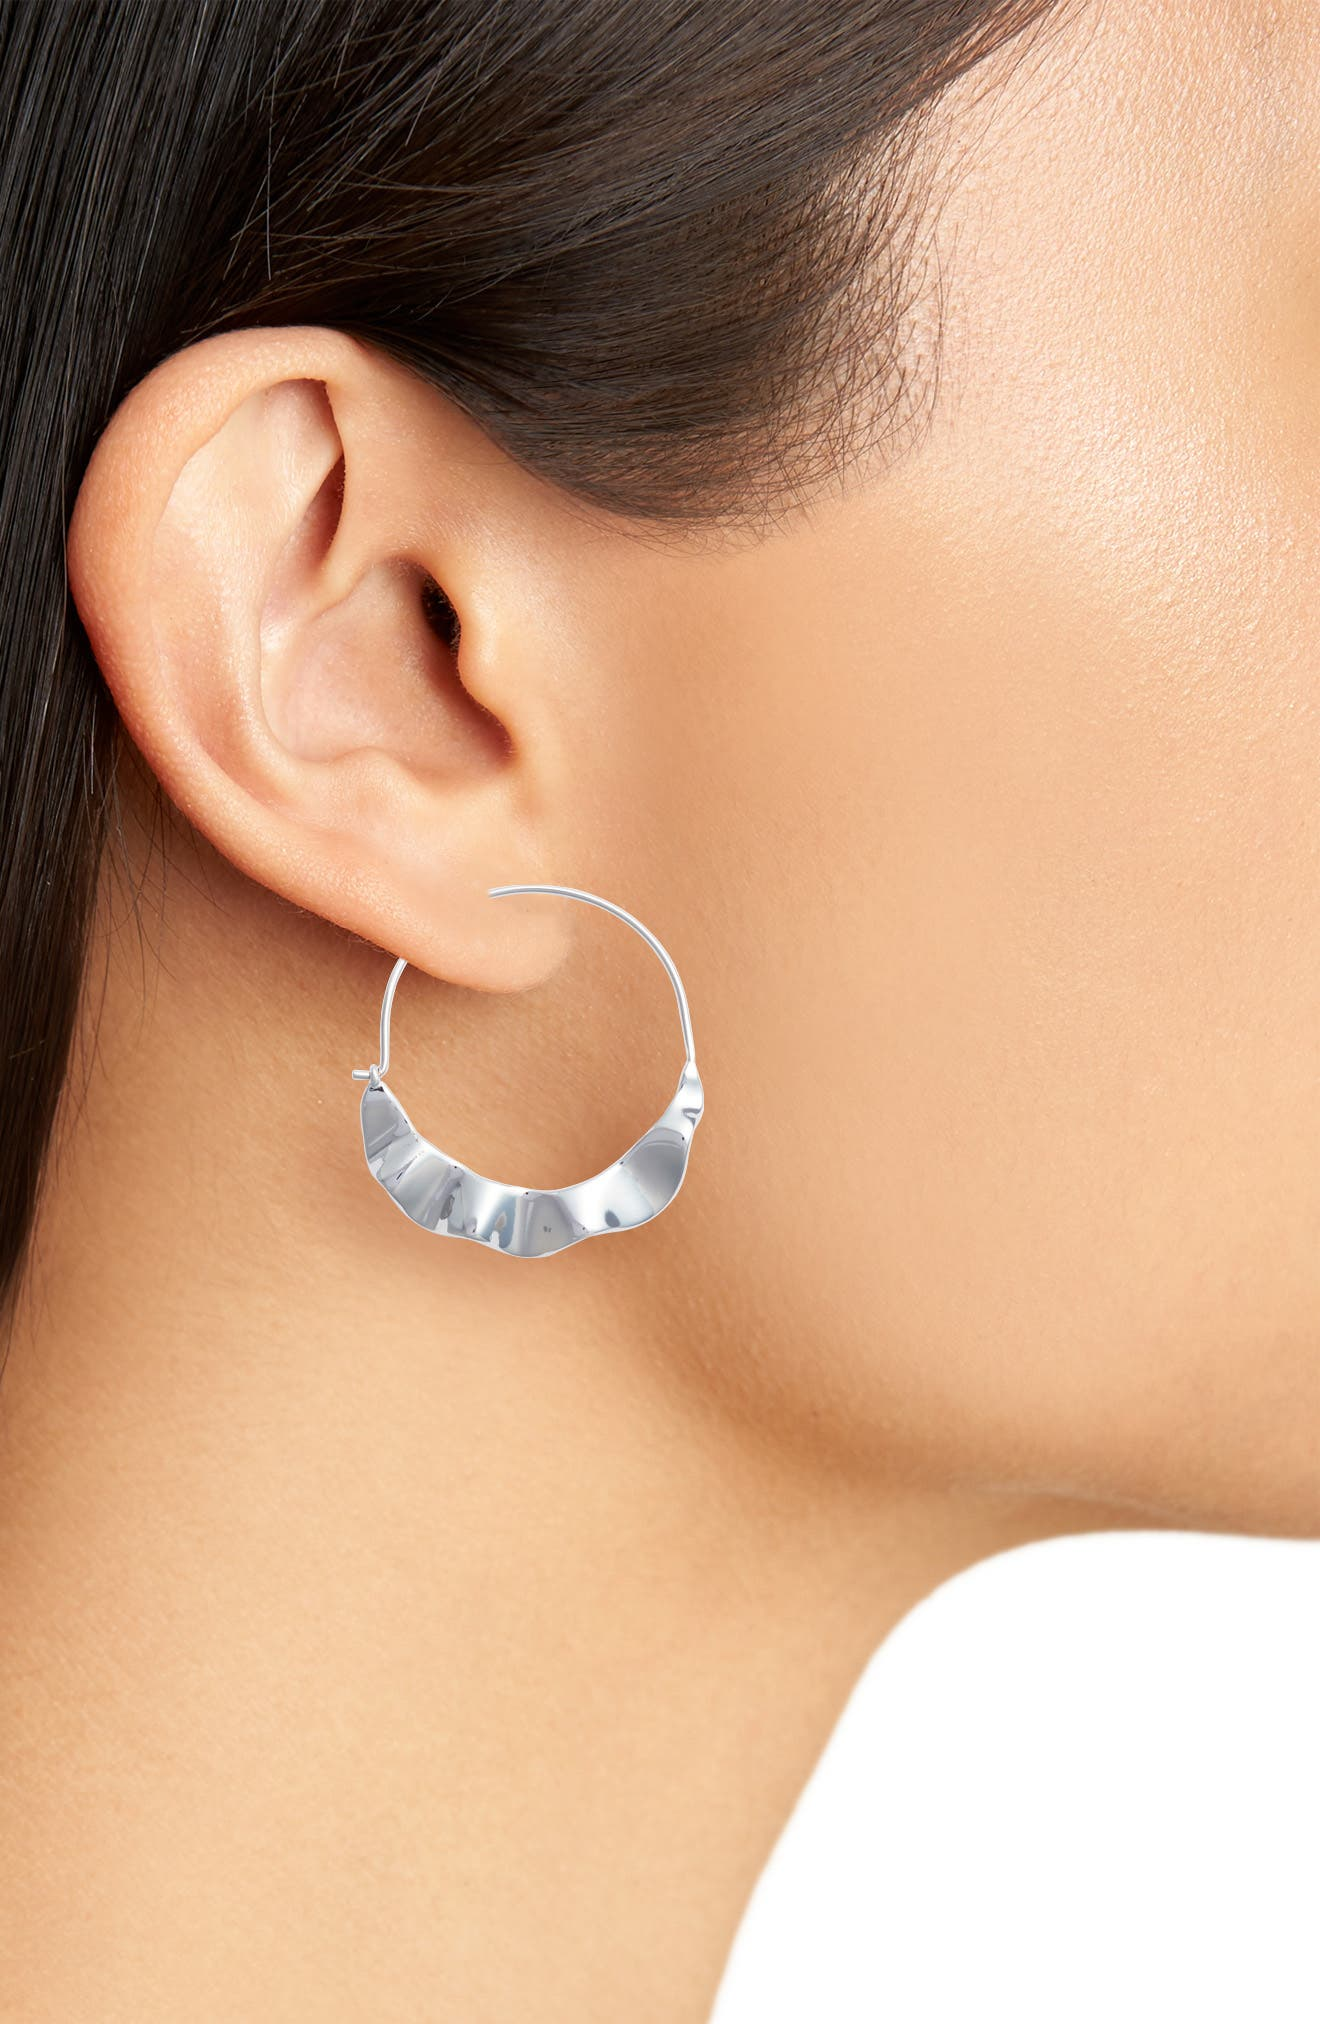 Waved Hoop Earrings,                             Alternate thumbnail 2, color,                             040